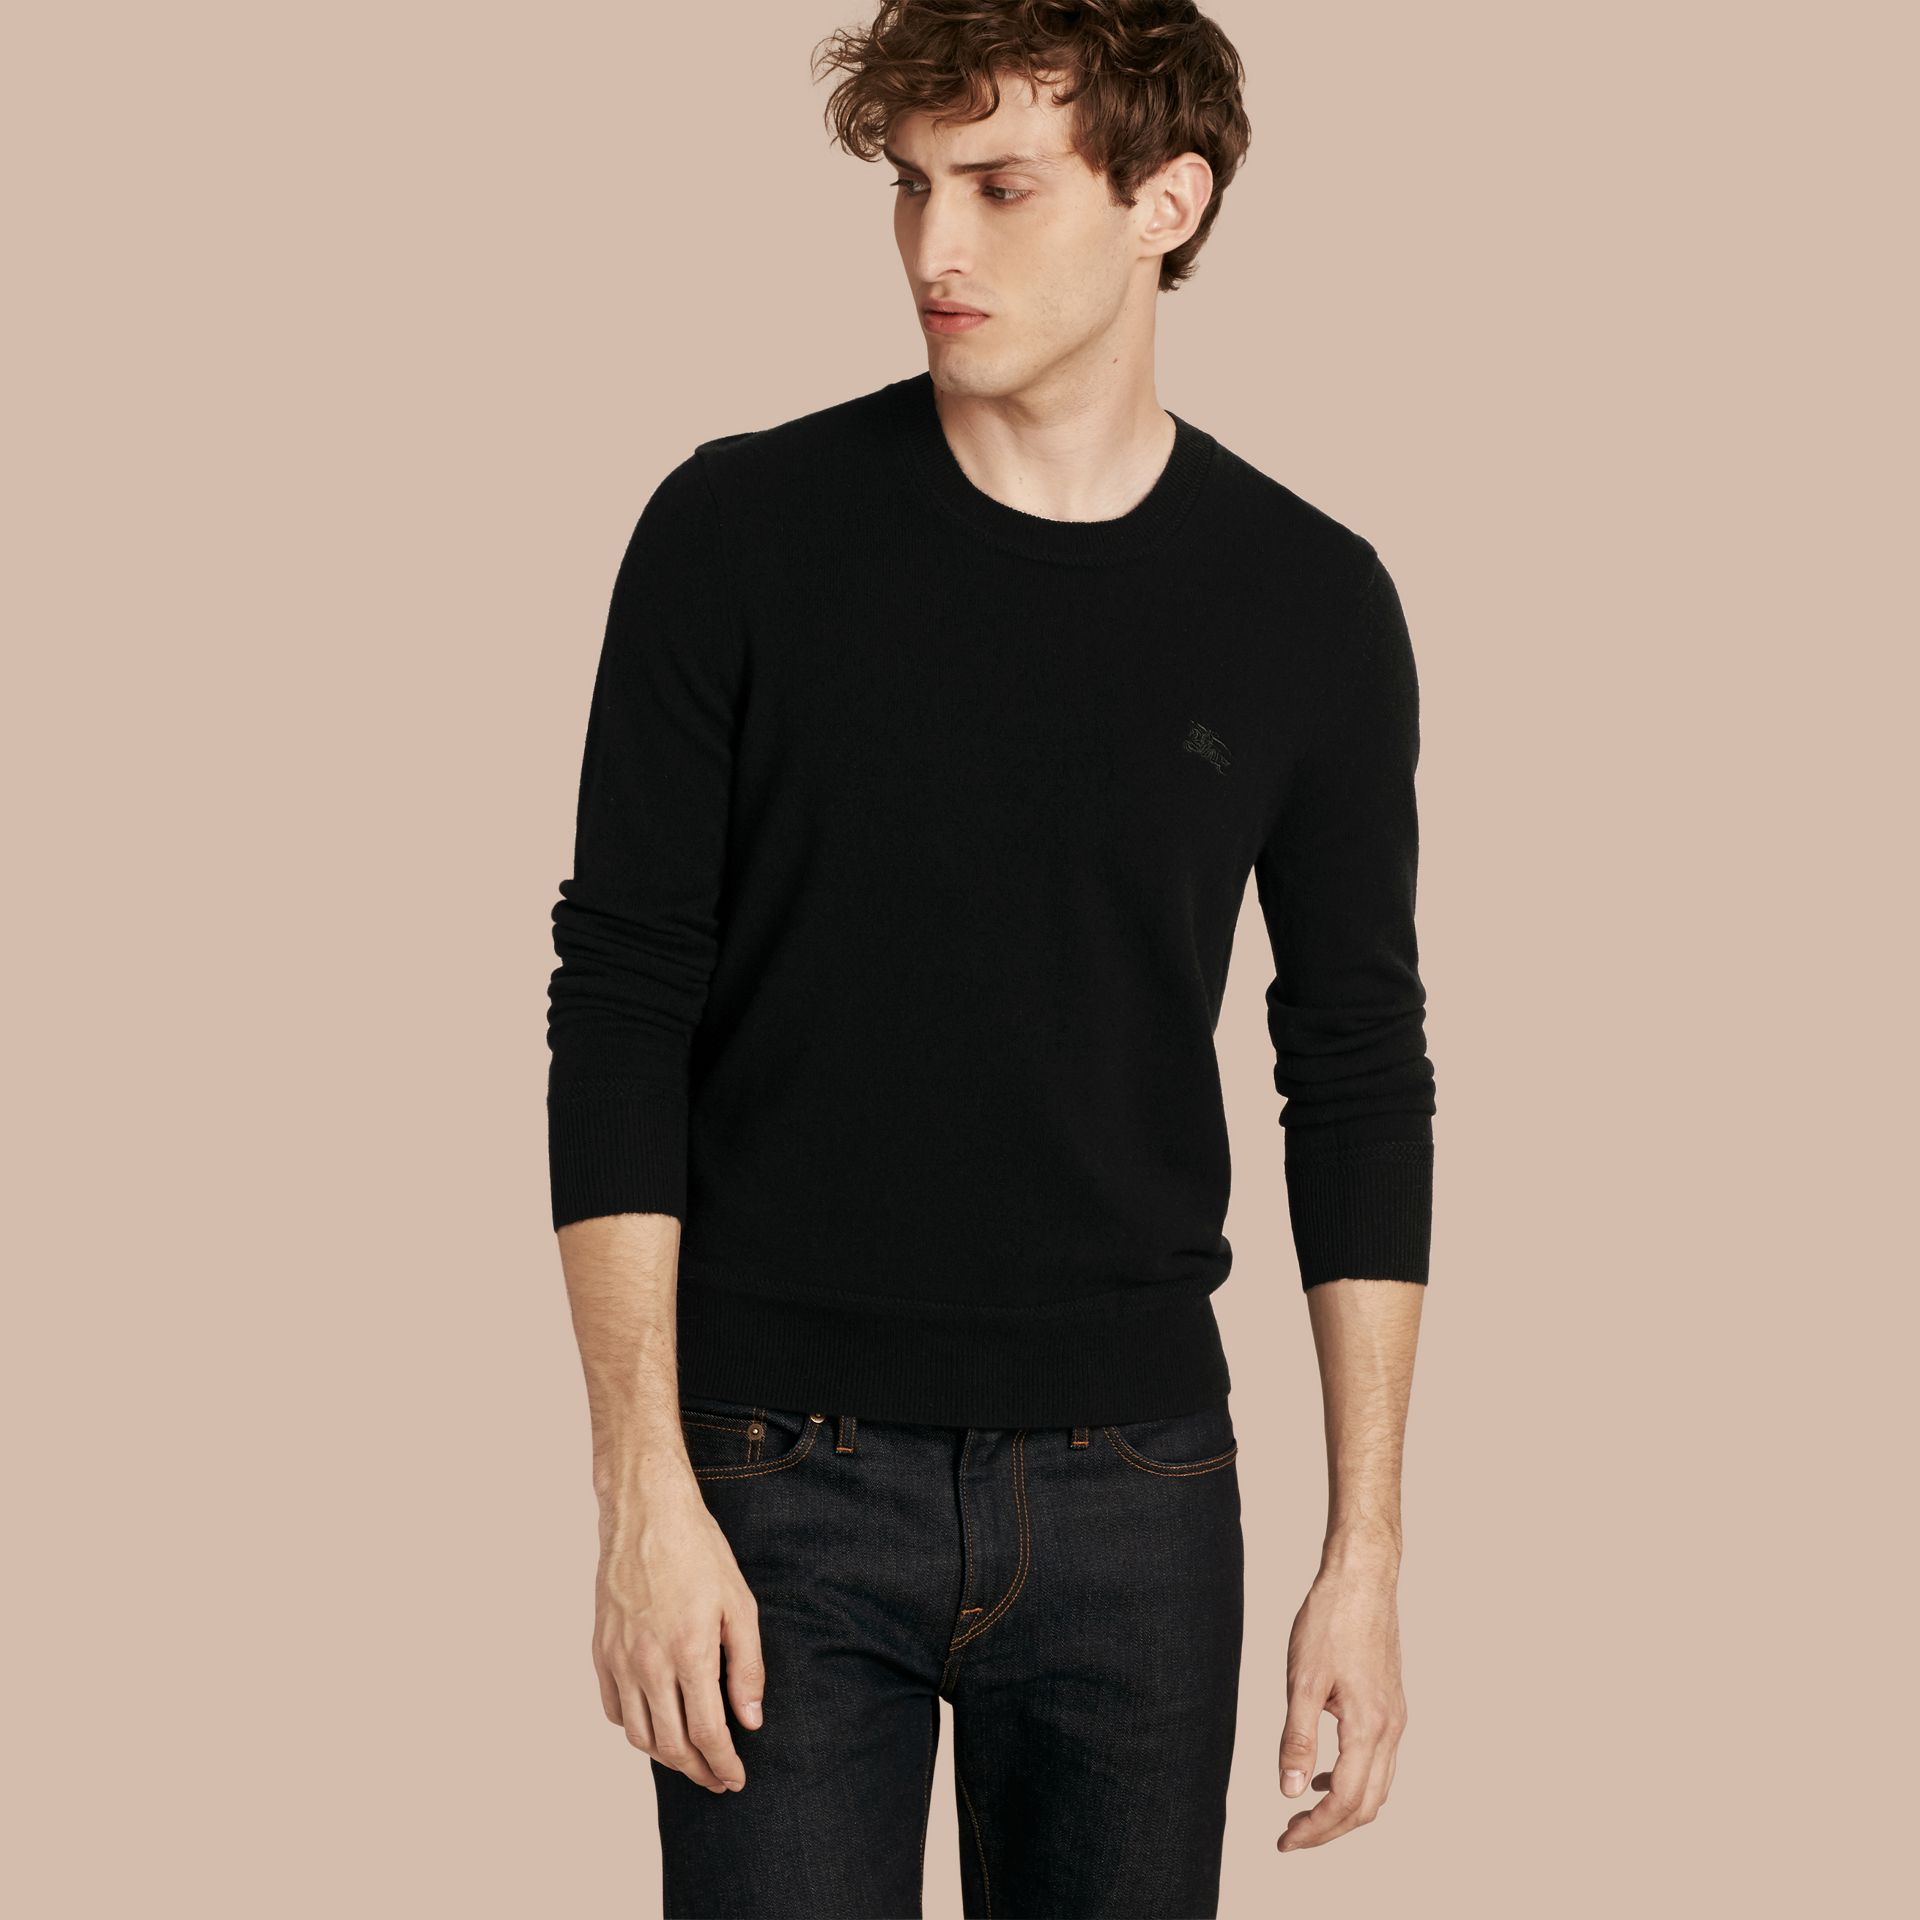 Black Crew Neck Cashmere Sweater Black - gallery image 1